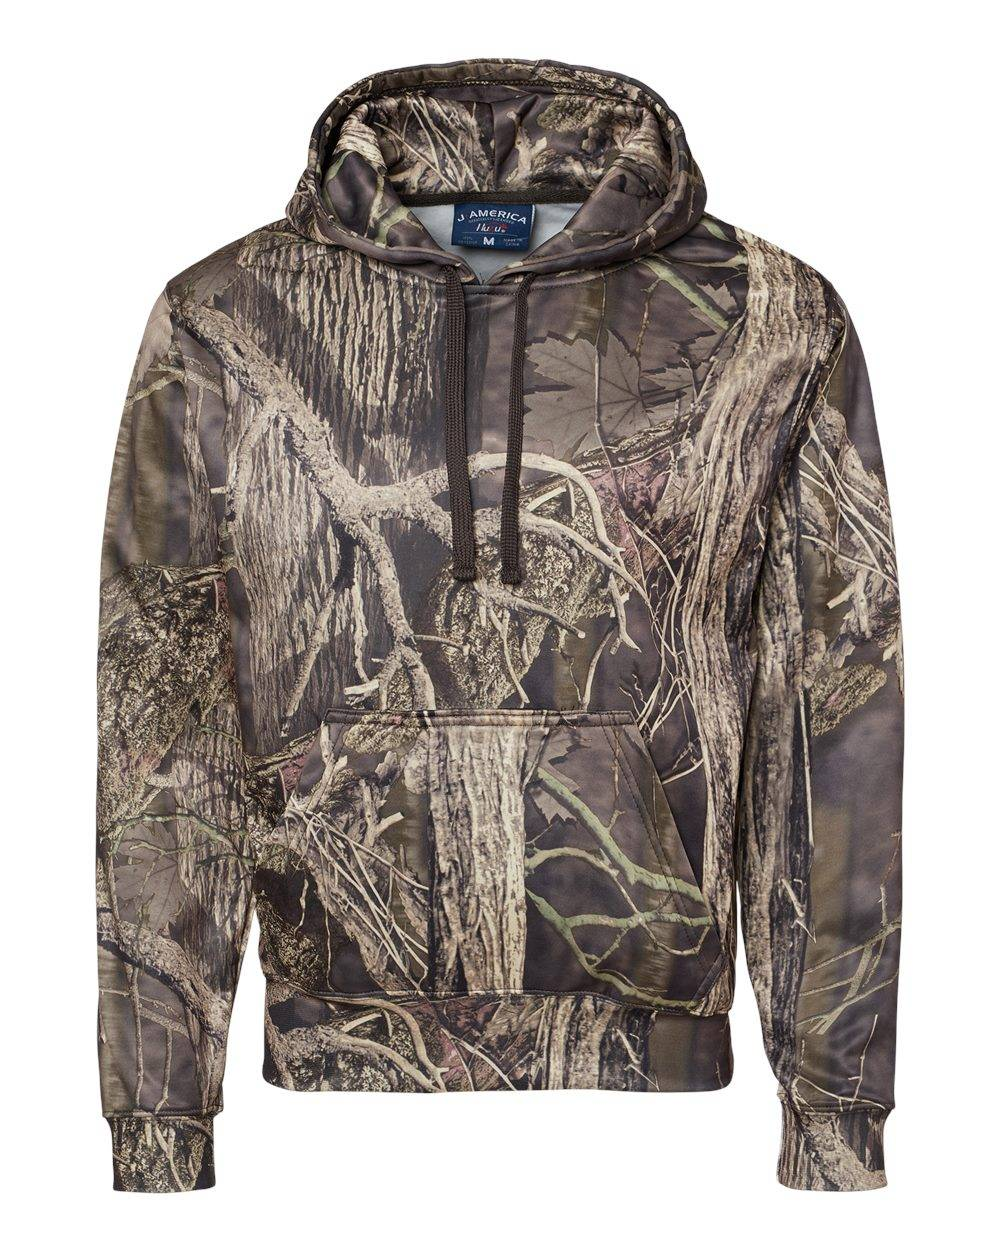 J. America - Polyester Tailgate Hooded Sweatshirt - 8615 - Outdoor Camo - X-Large